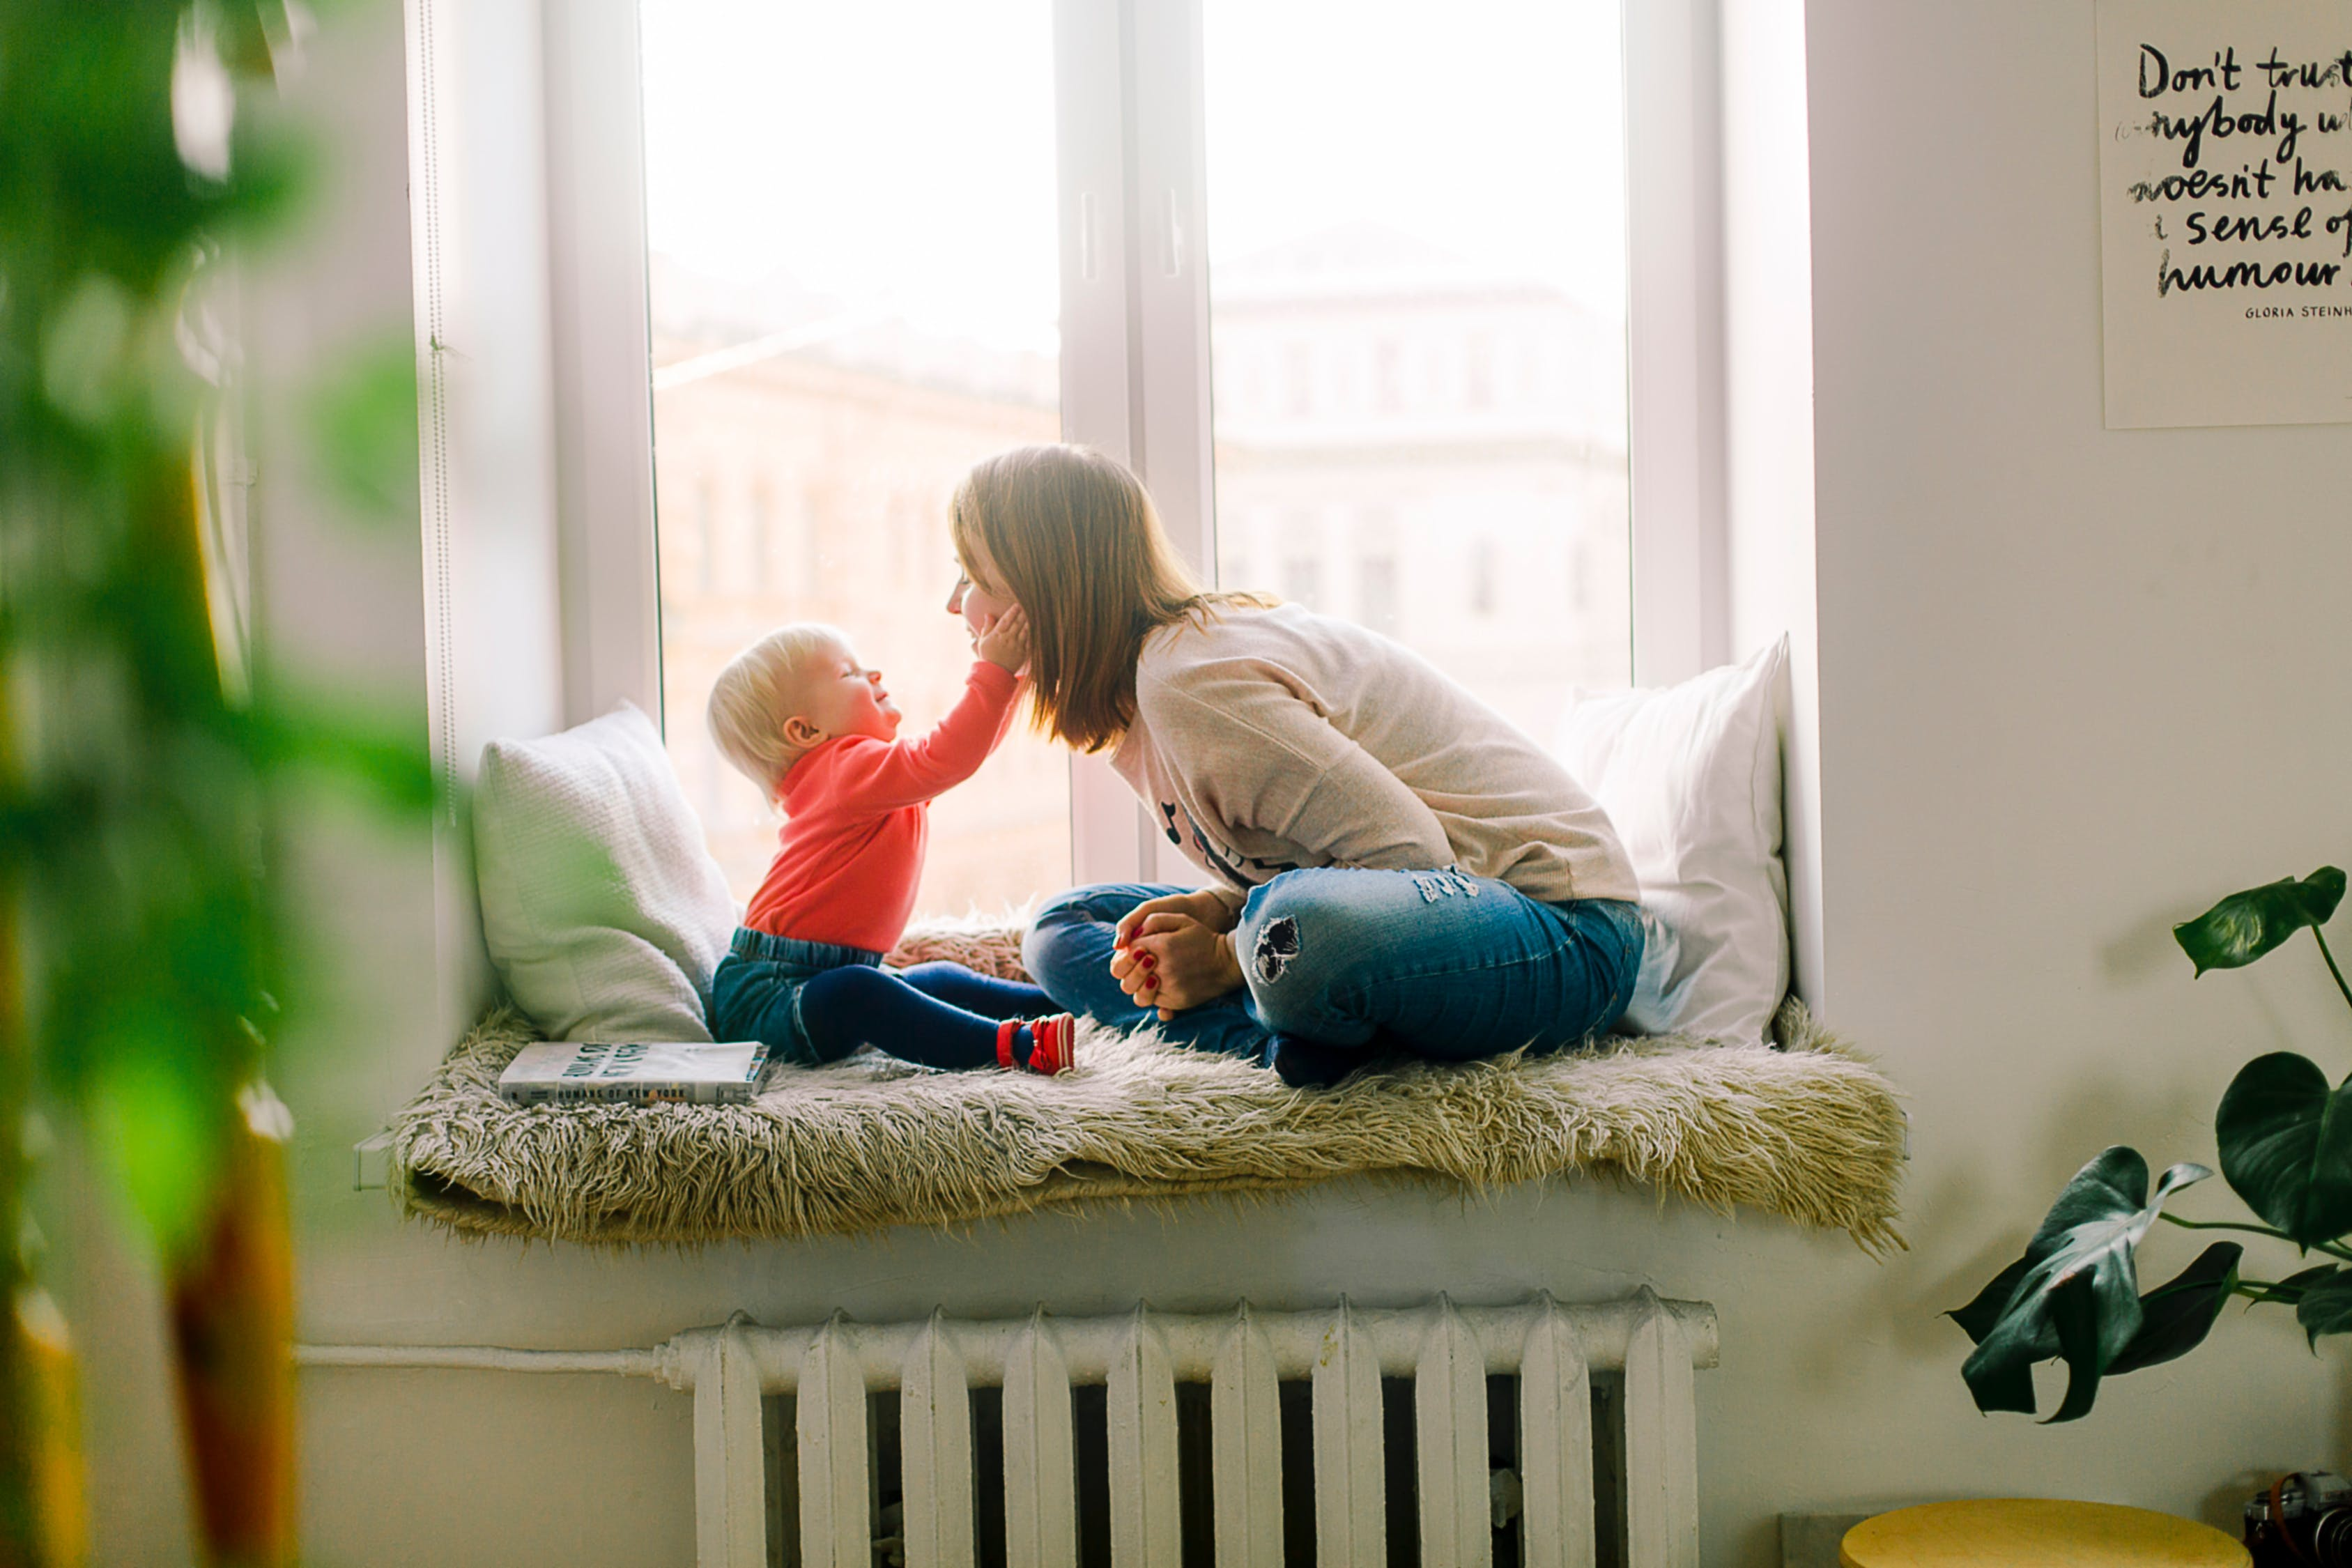 A mom is playing with her baby by sitting on the window to create special memories